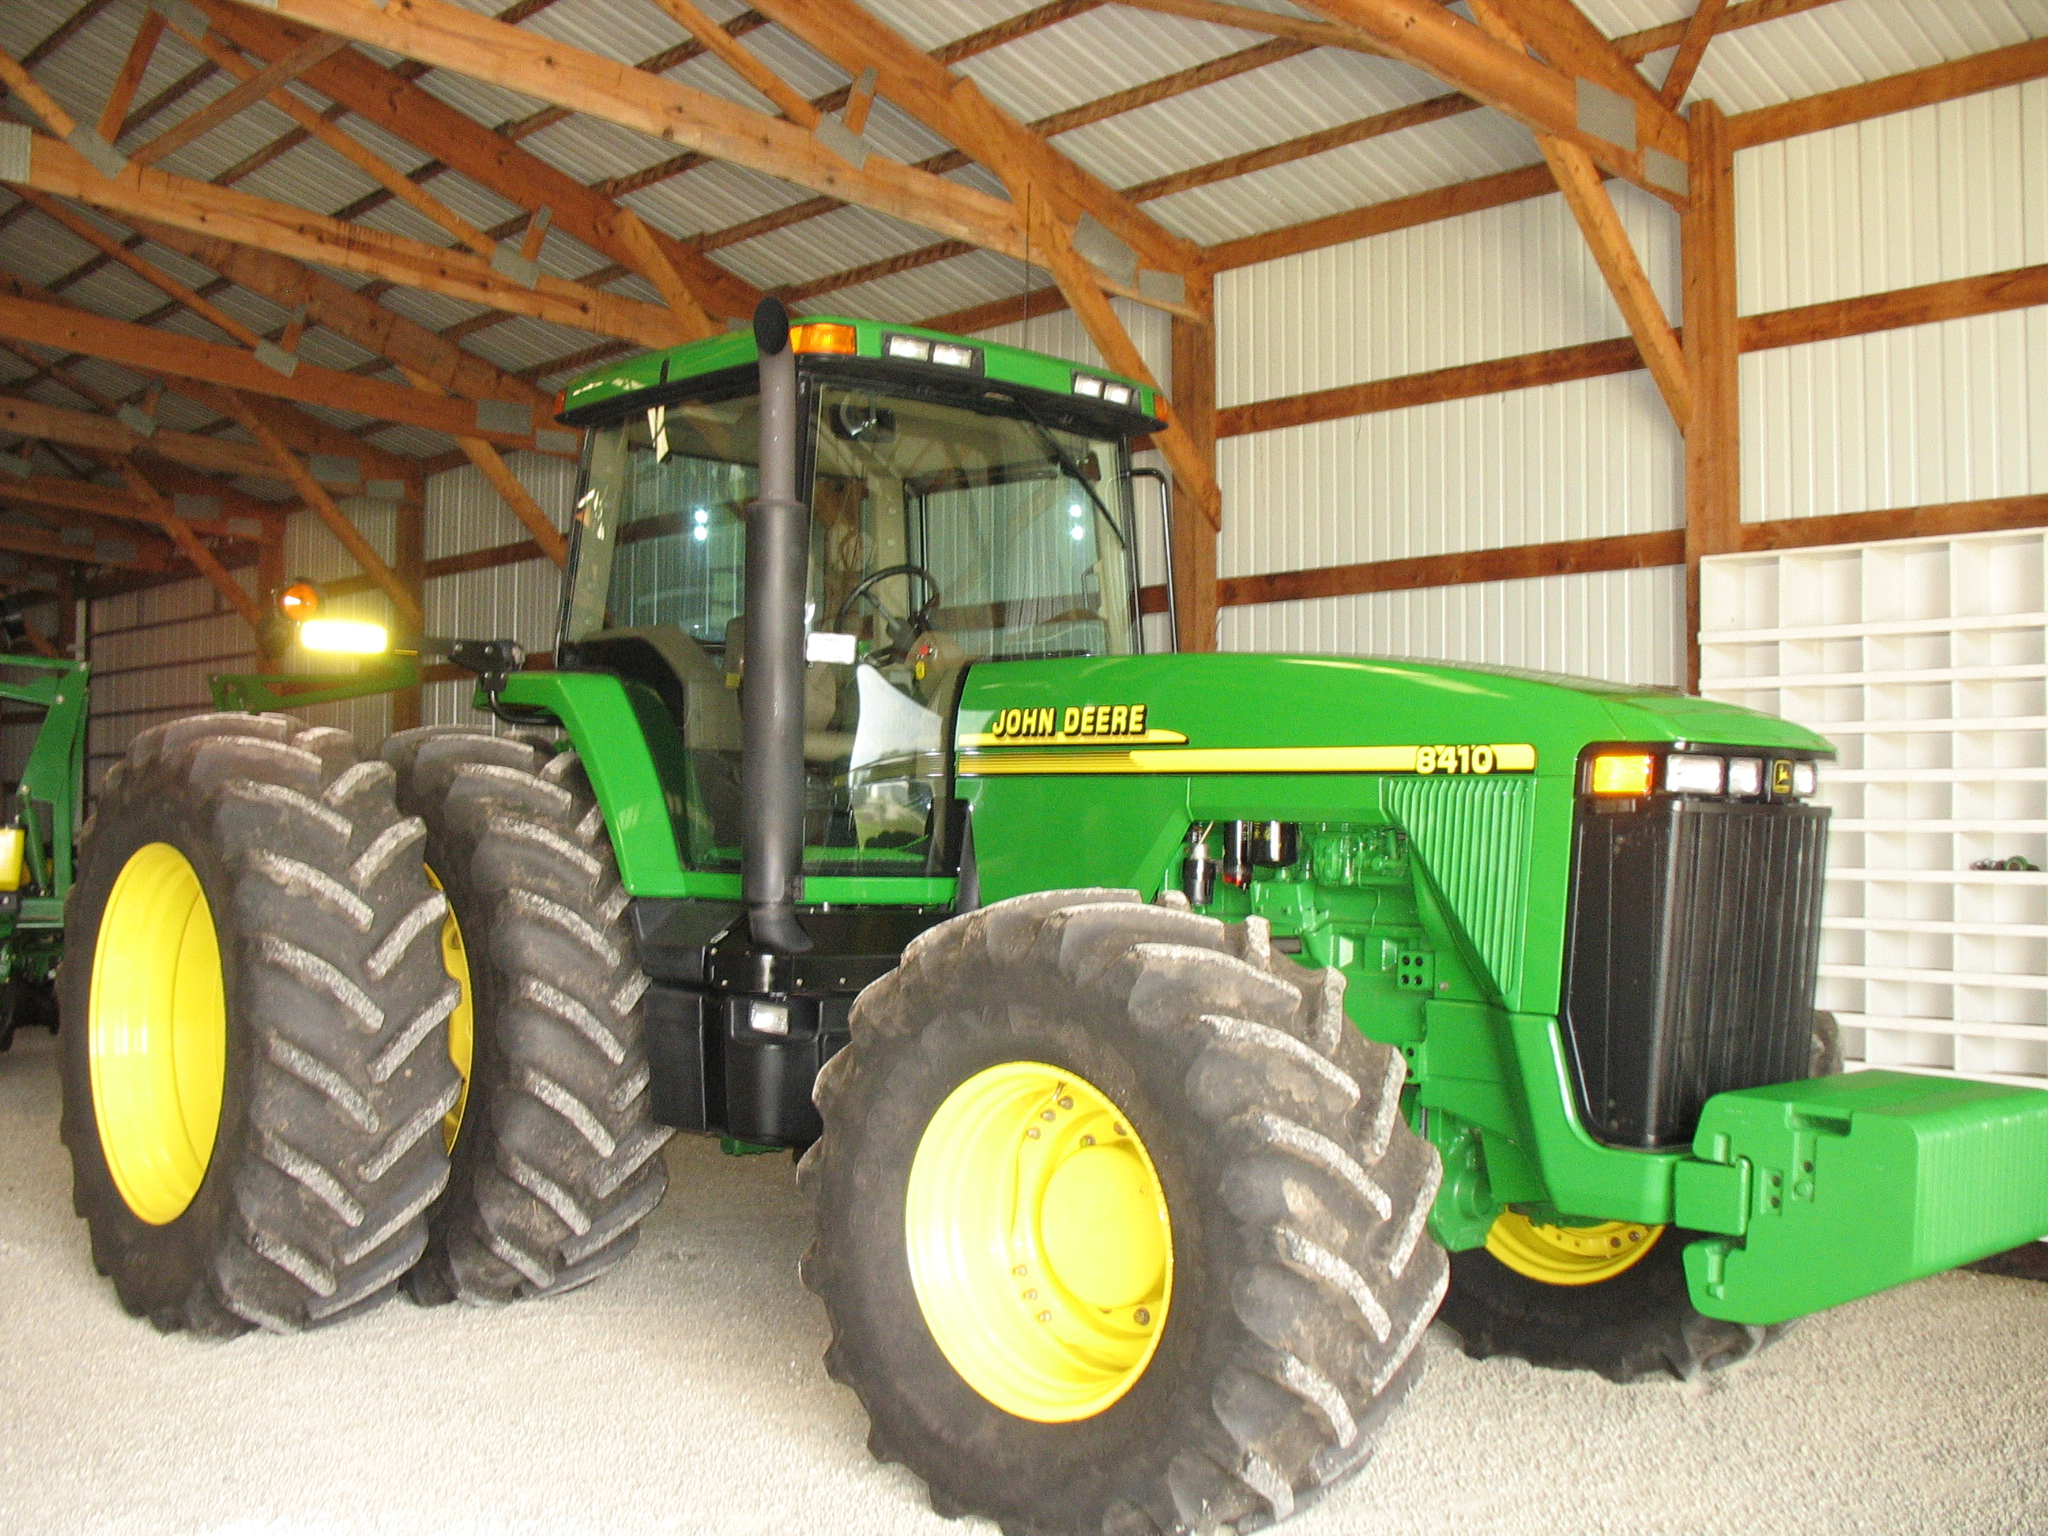 John Deere 8410 Tractor Sells for $136K at Auction